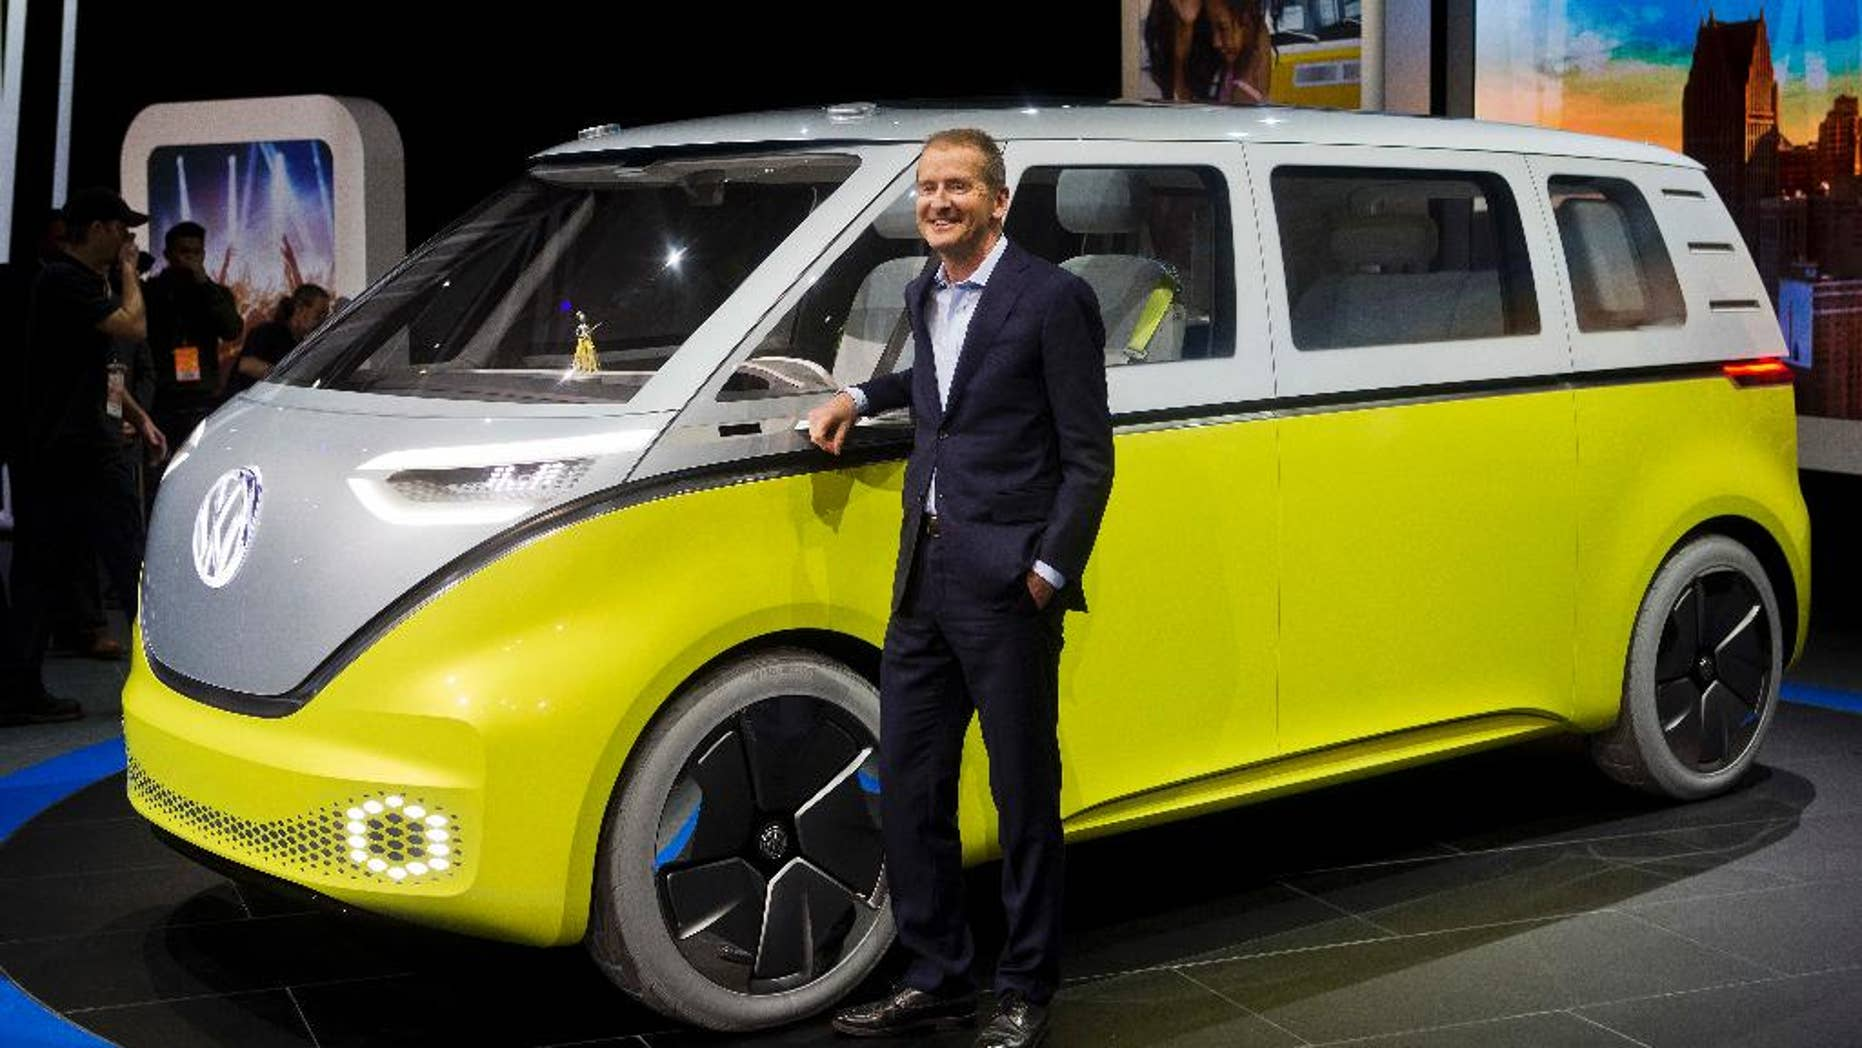 Dr. Herbert Diess, chairman of the Volkswagen brand, poses with the I.D. Buzz all-electric concept van, at the North American International Auto Show, Monday, Jan. 9, 2017, in Detroit. (AP Photo/Tony Ding)